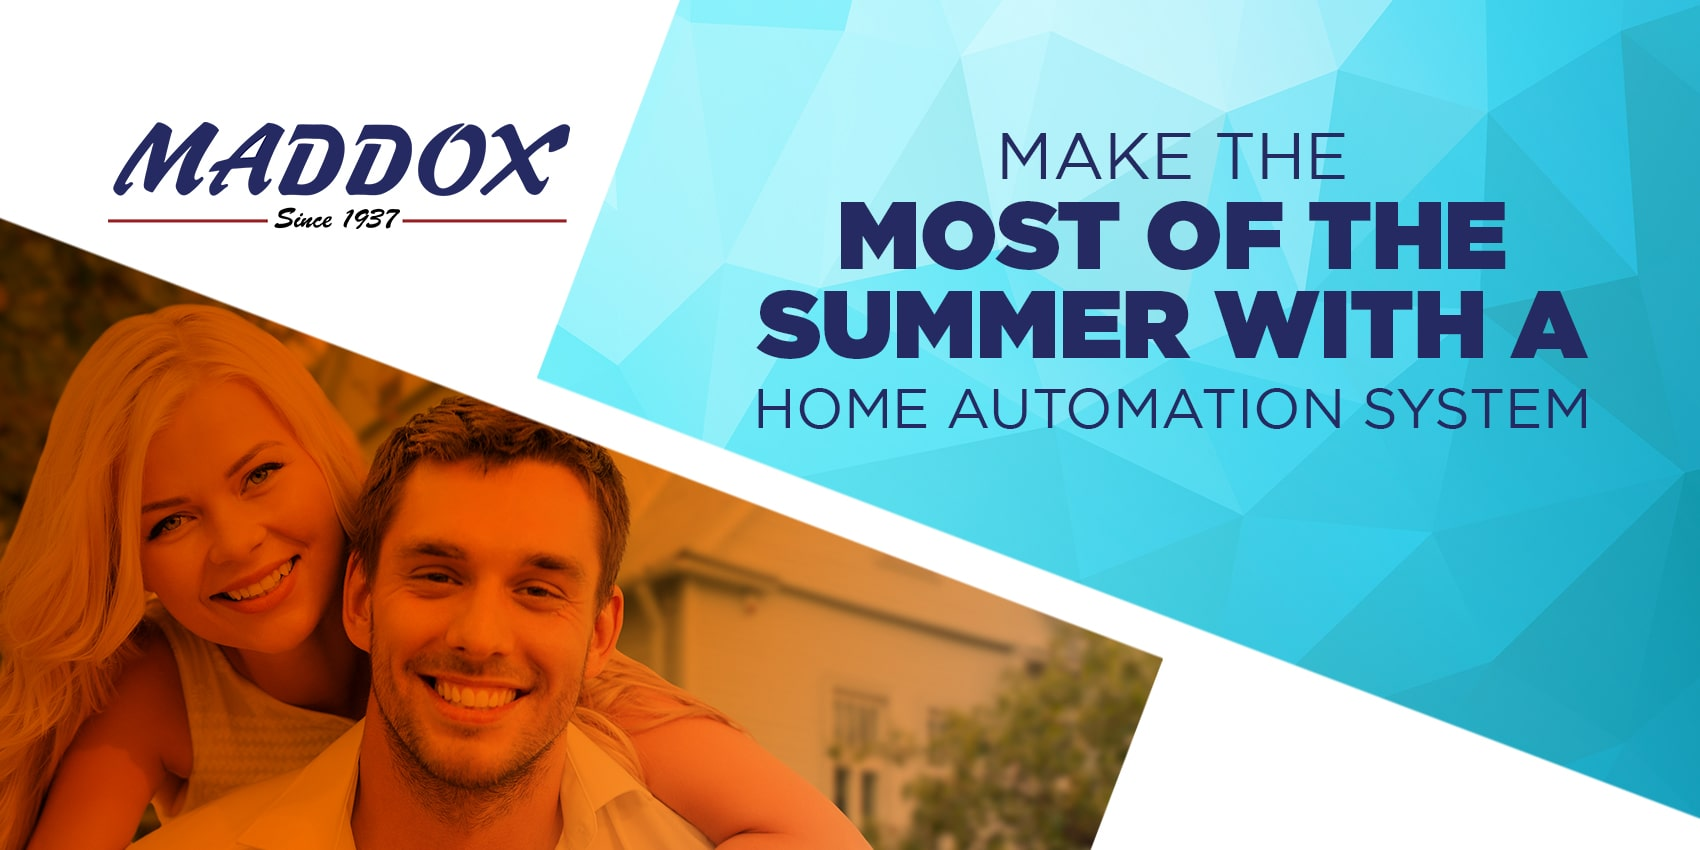 Make the Most of the Summer with a Home Automation System